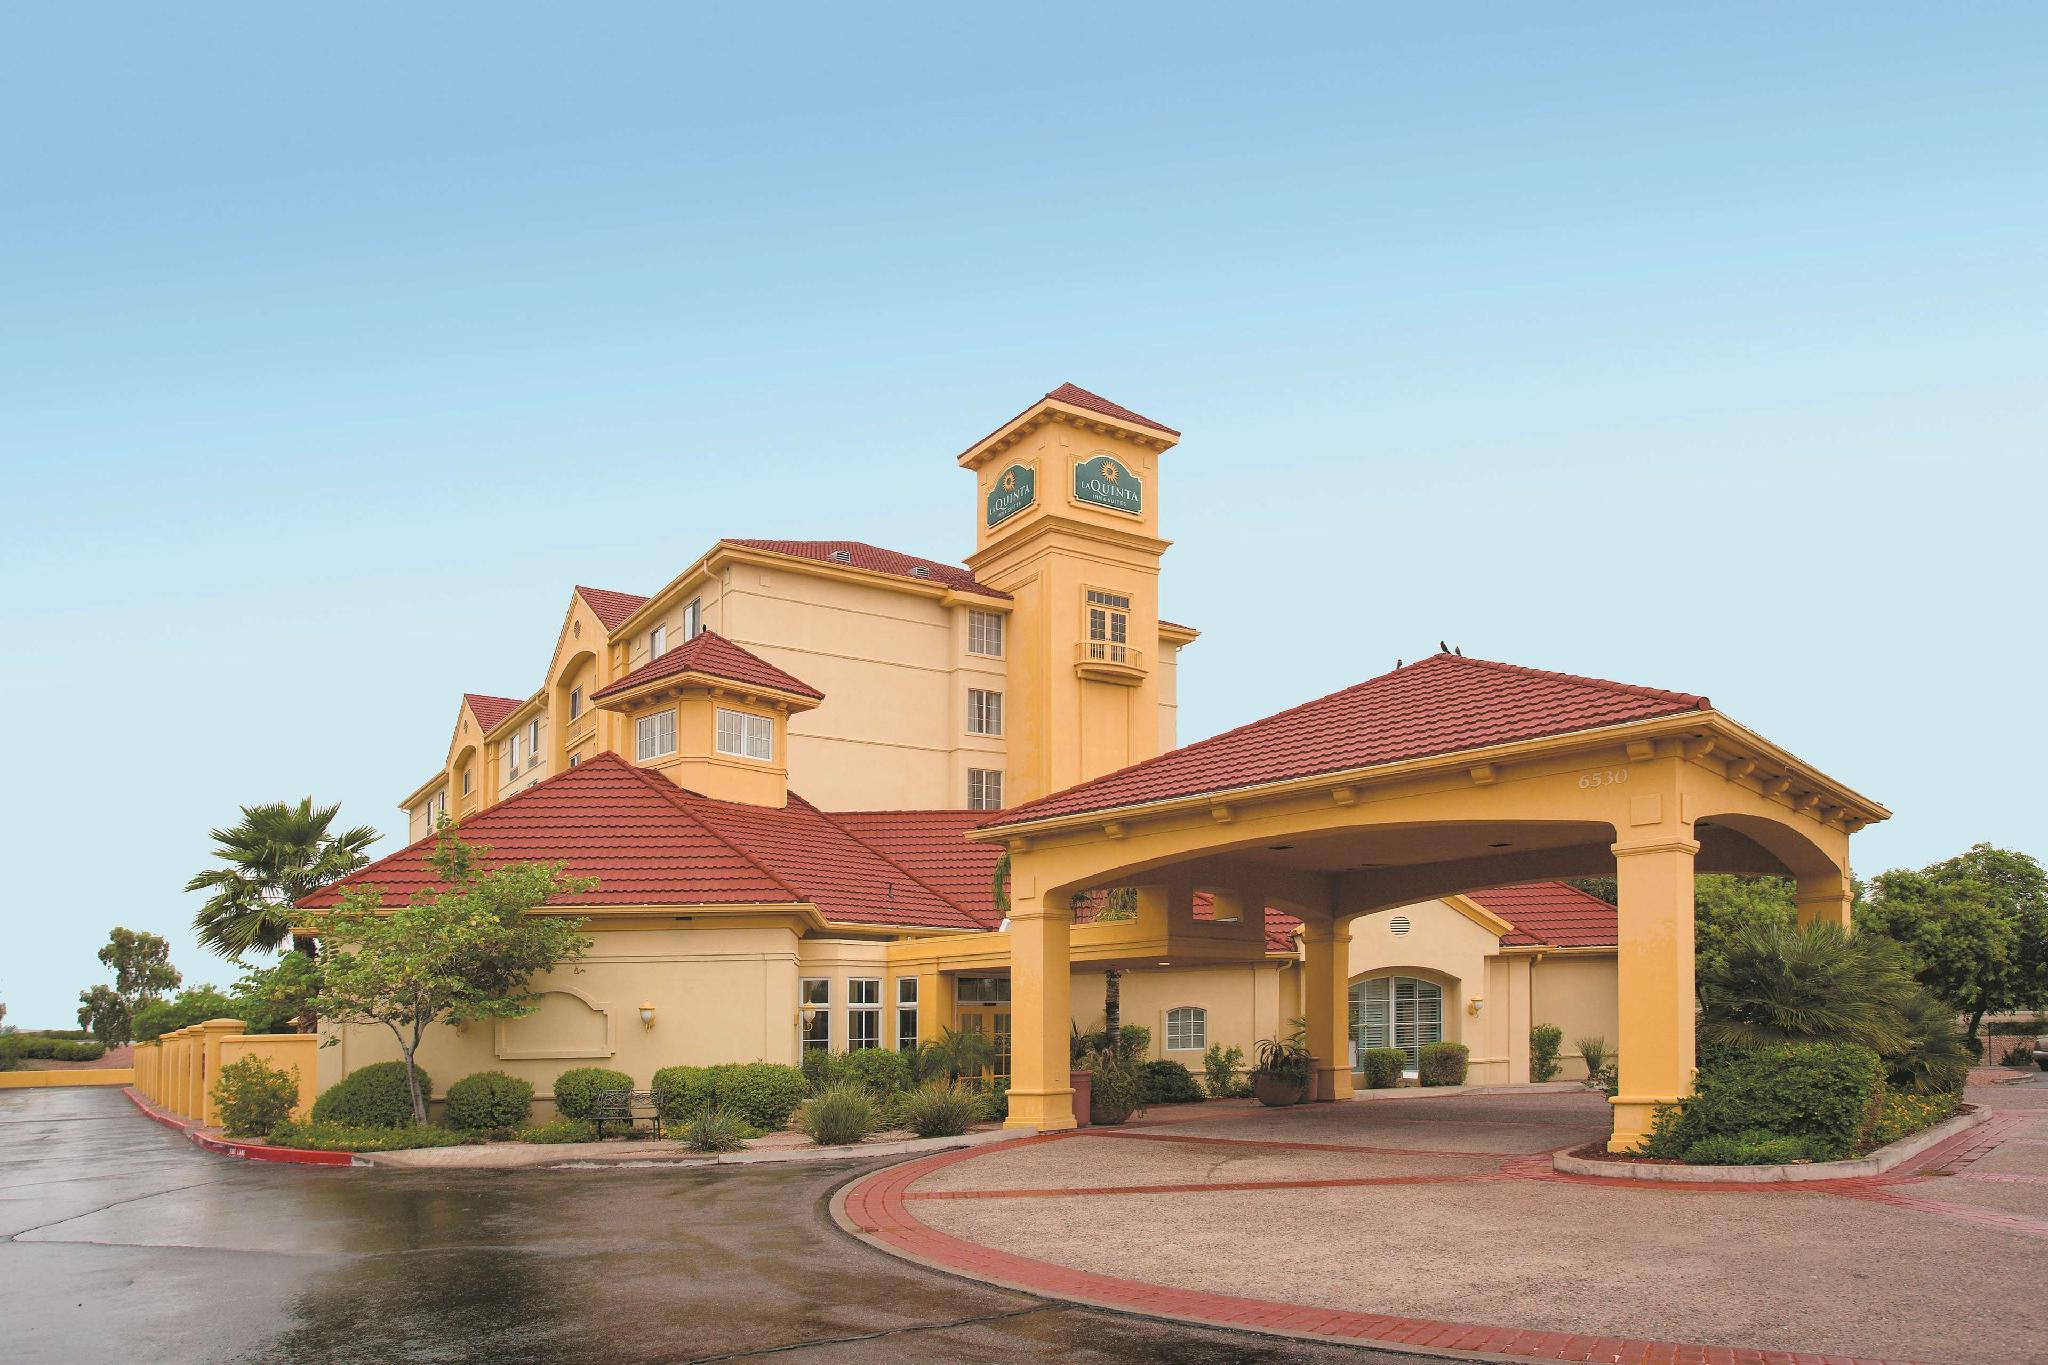 La Quinta Inn & Suites by Wyndham Mesa Superstition Springs